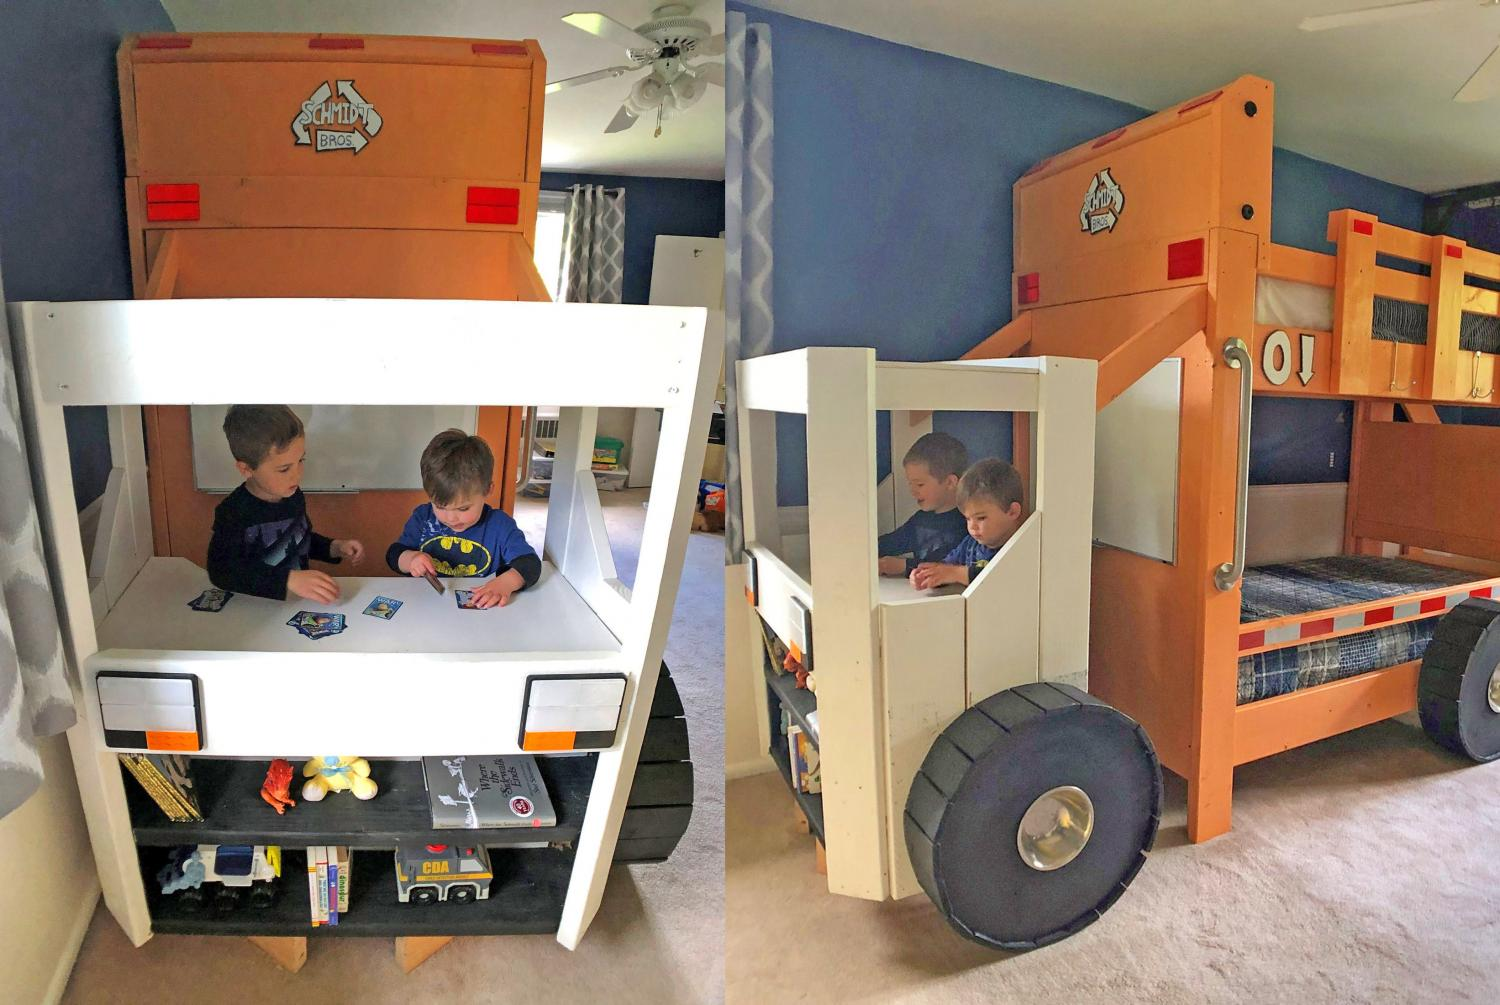 This Garbage Truck Bunk Bed Has A Desk And Bookshelf In The Cabin Of The Truck